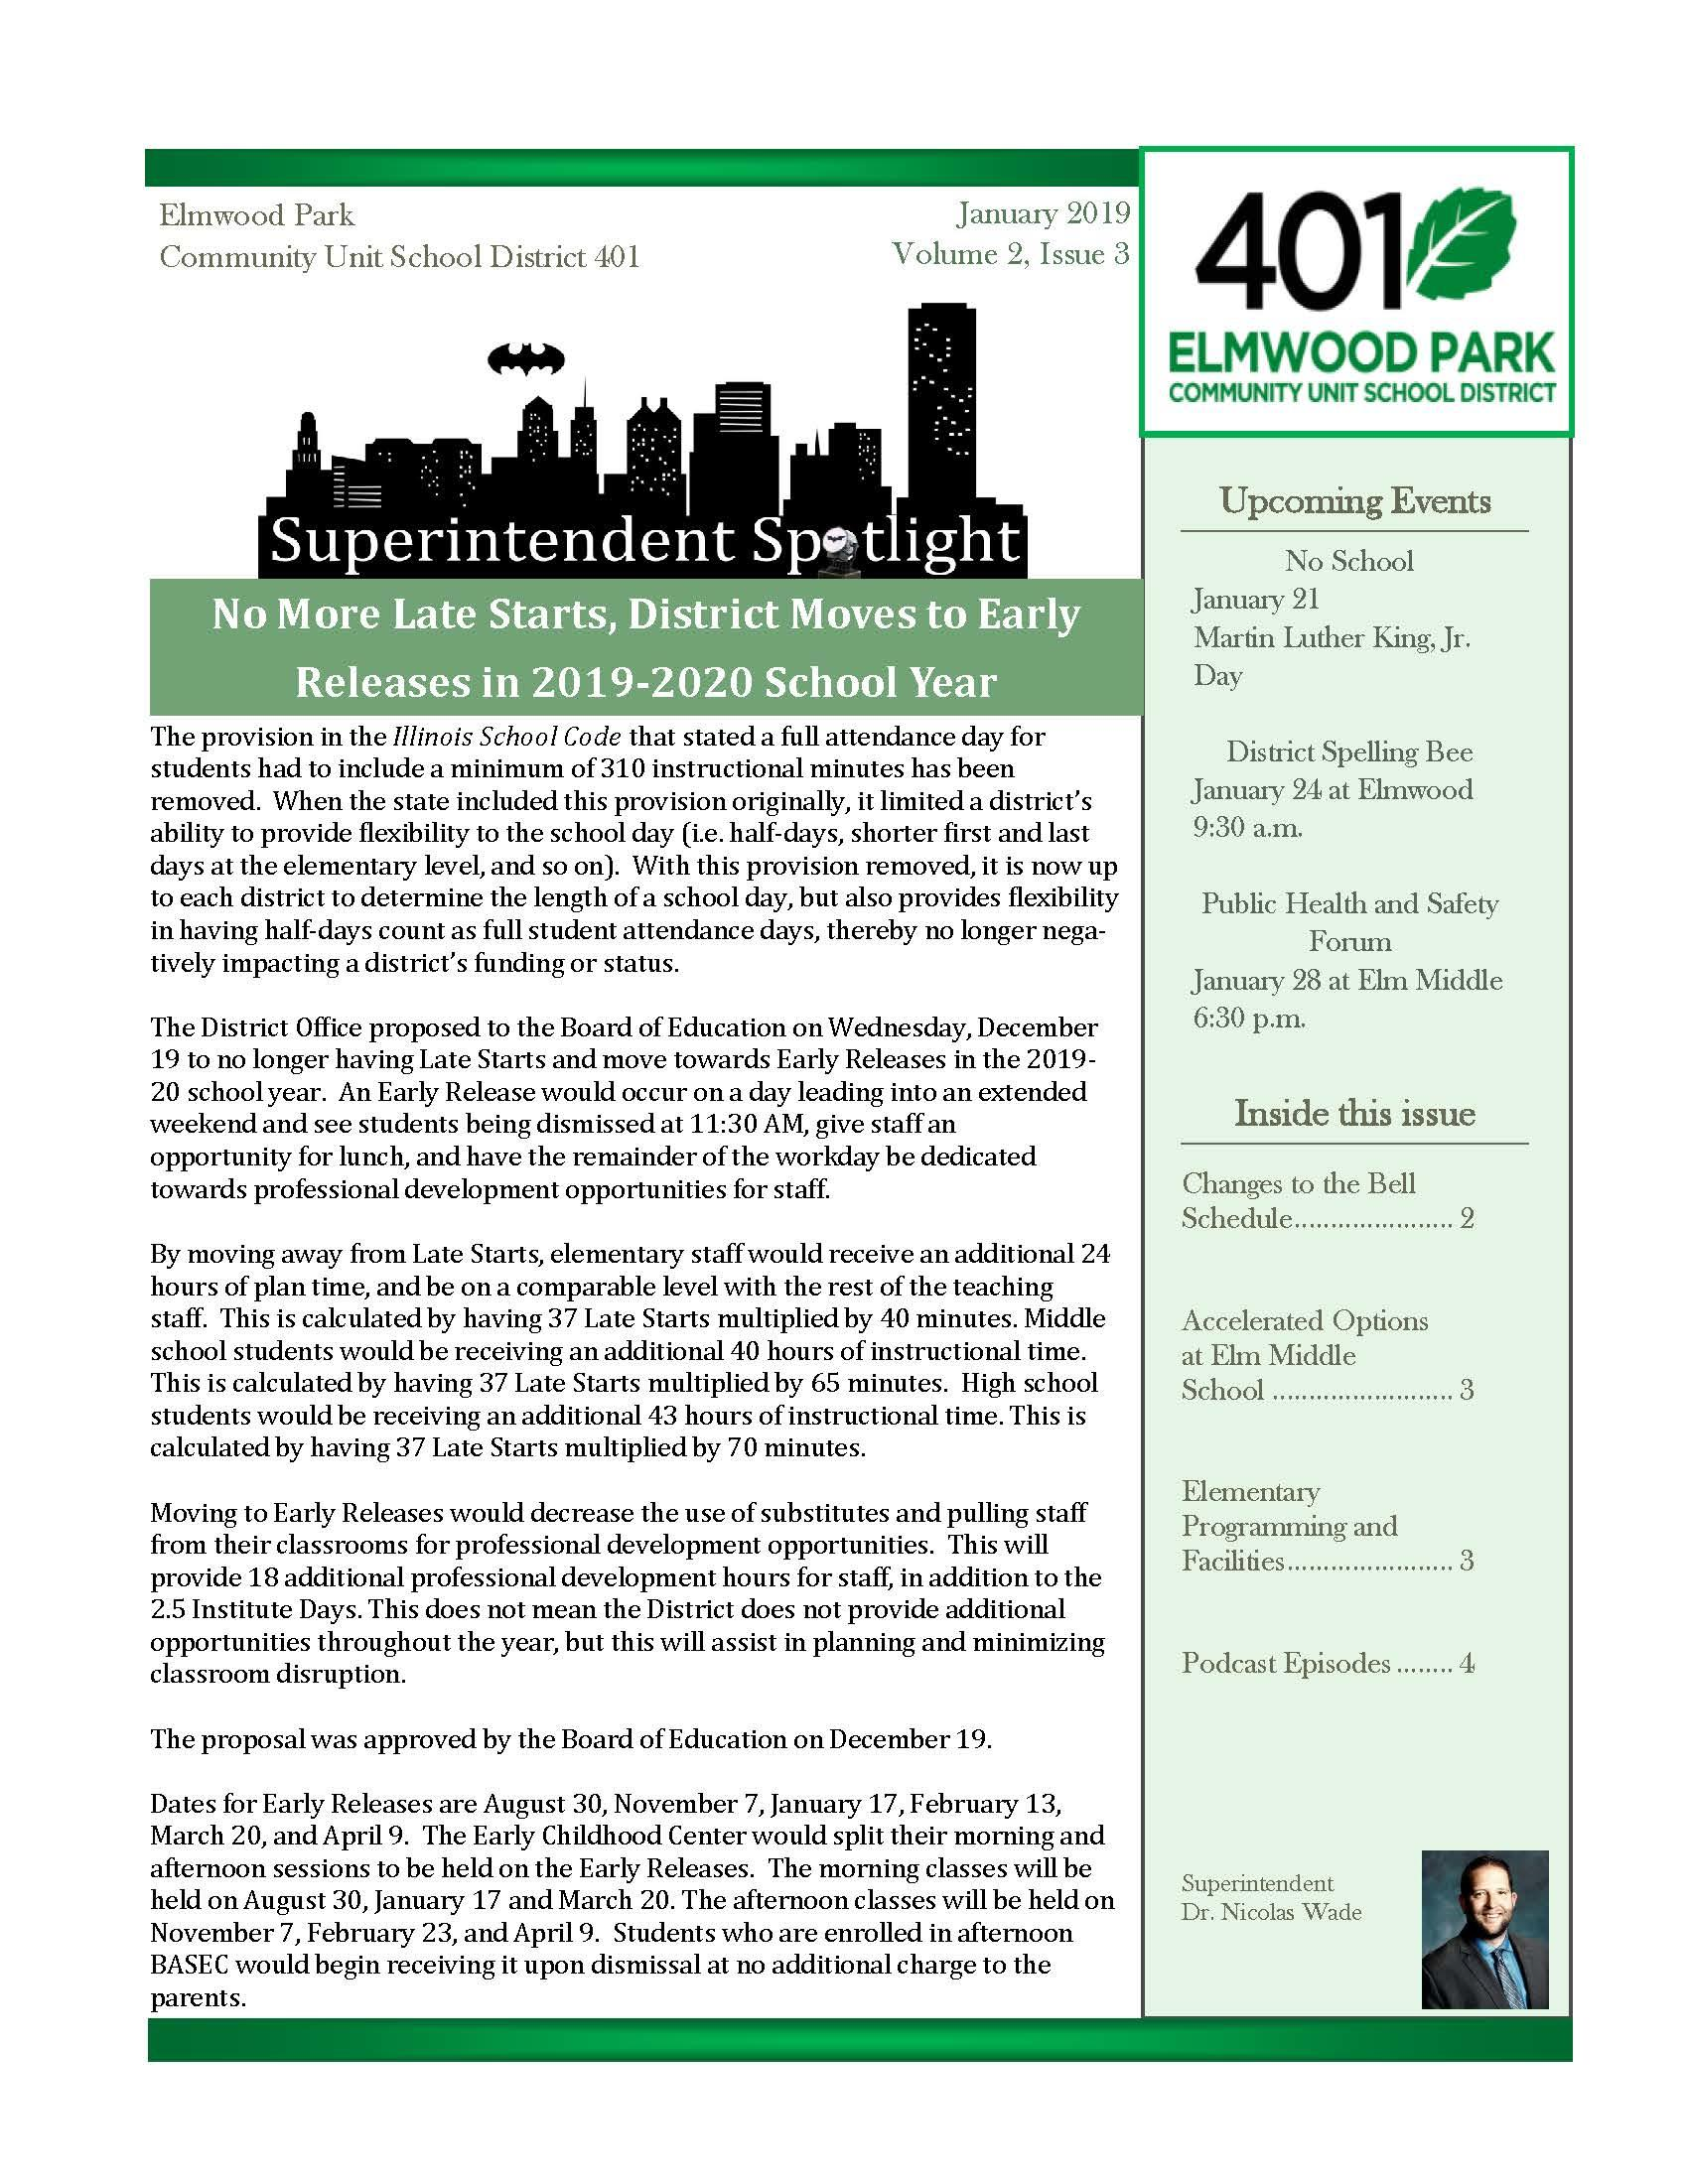 Superintendent Spotlight, January 2019 issue, page 1